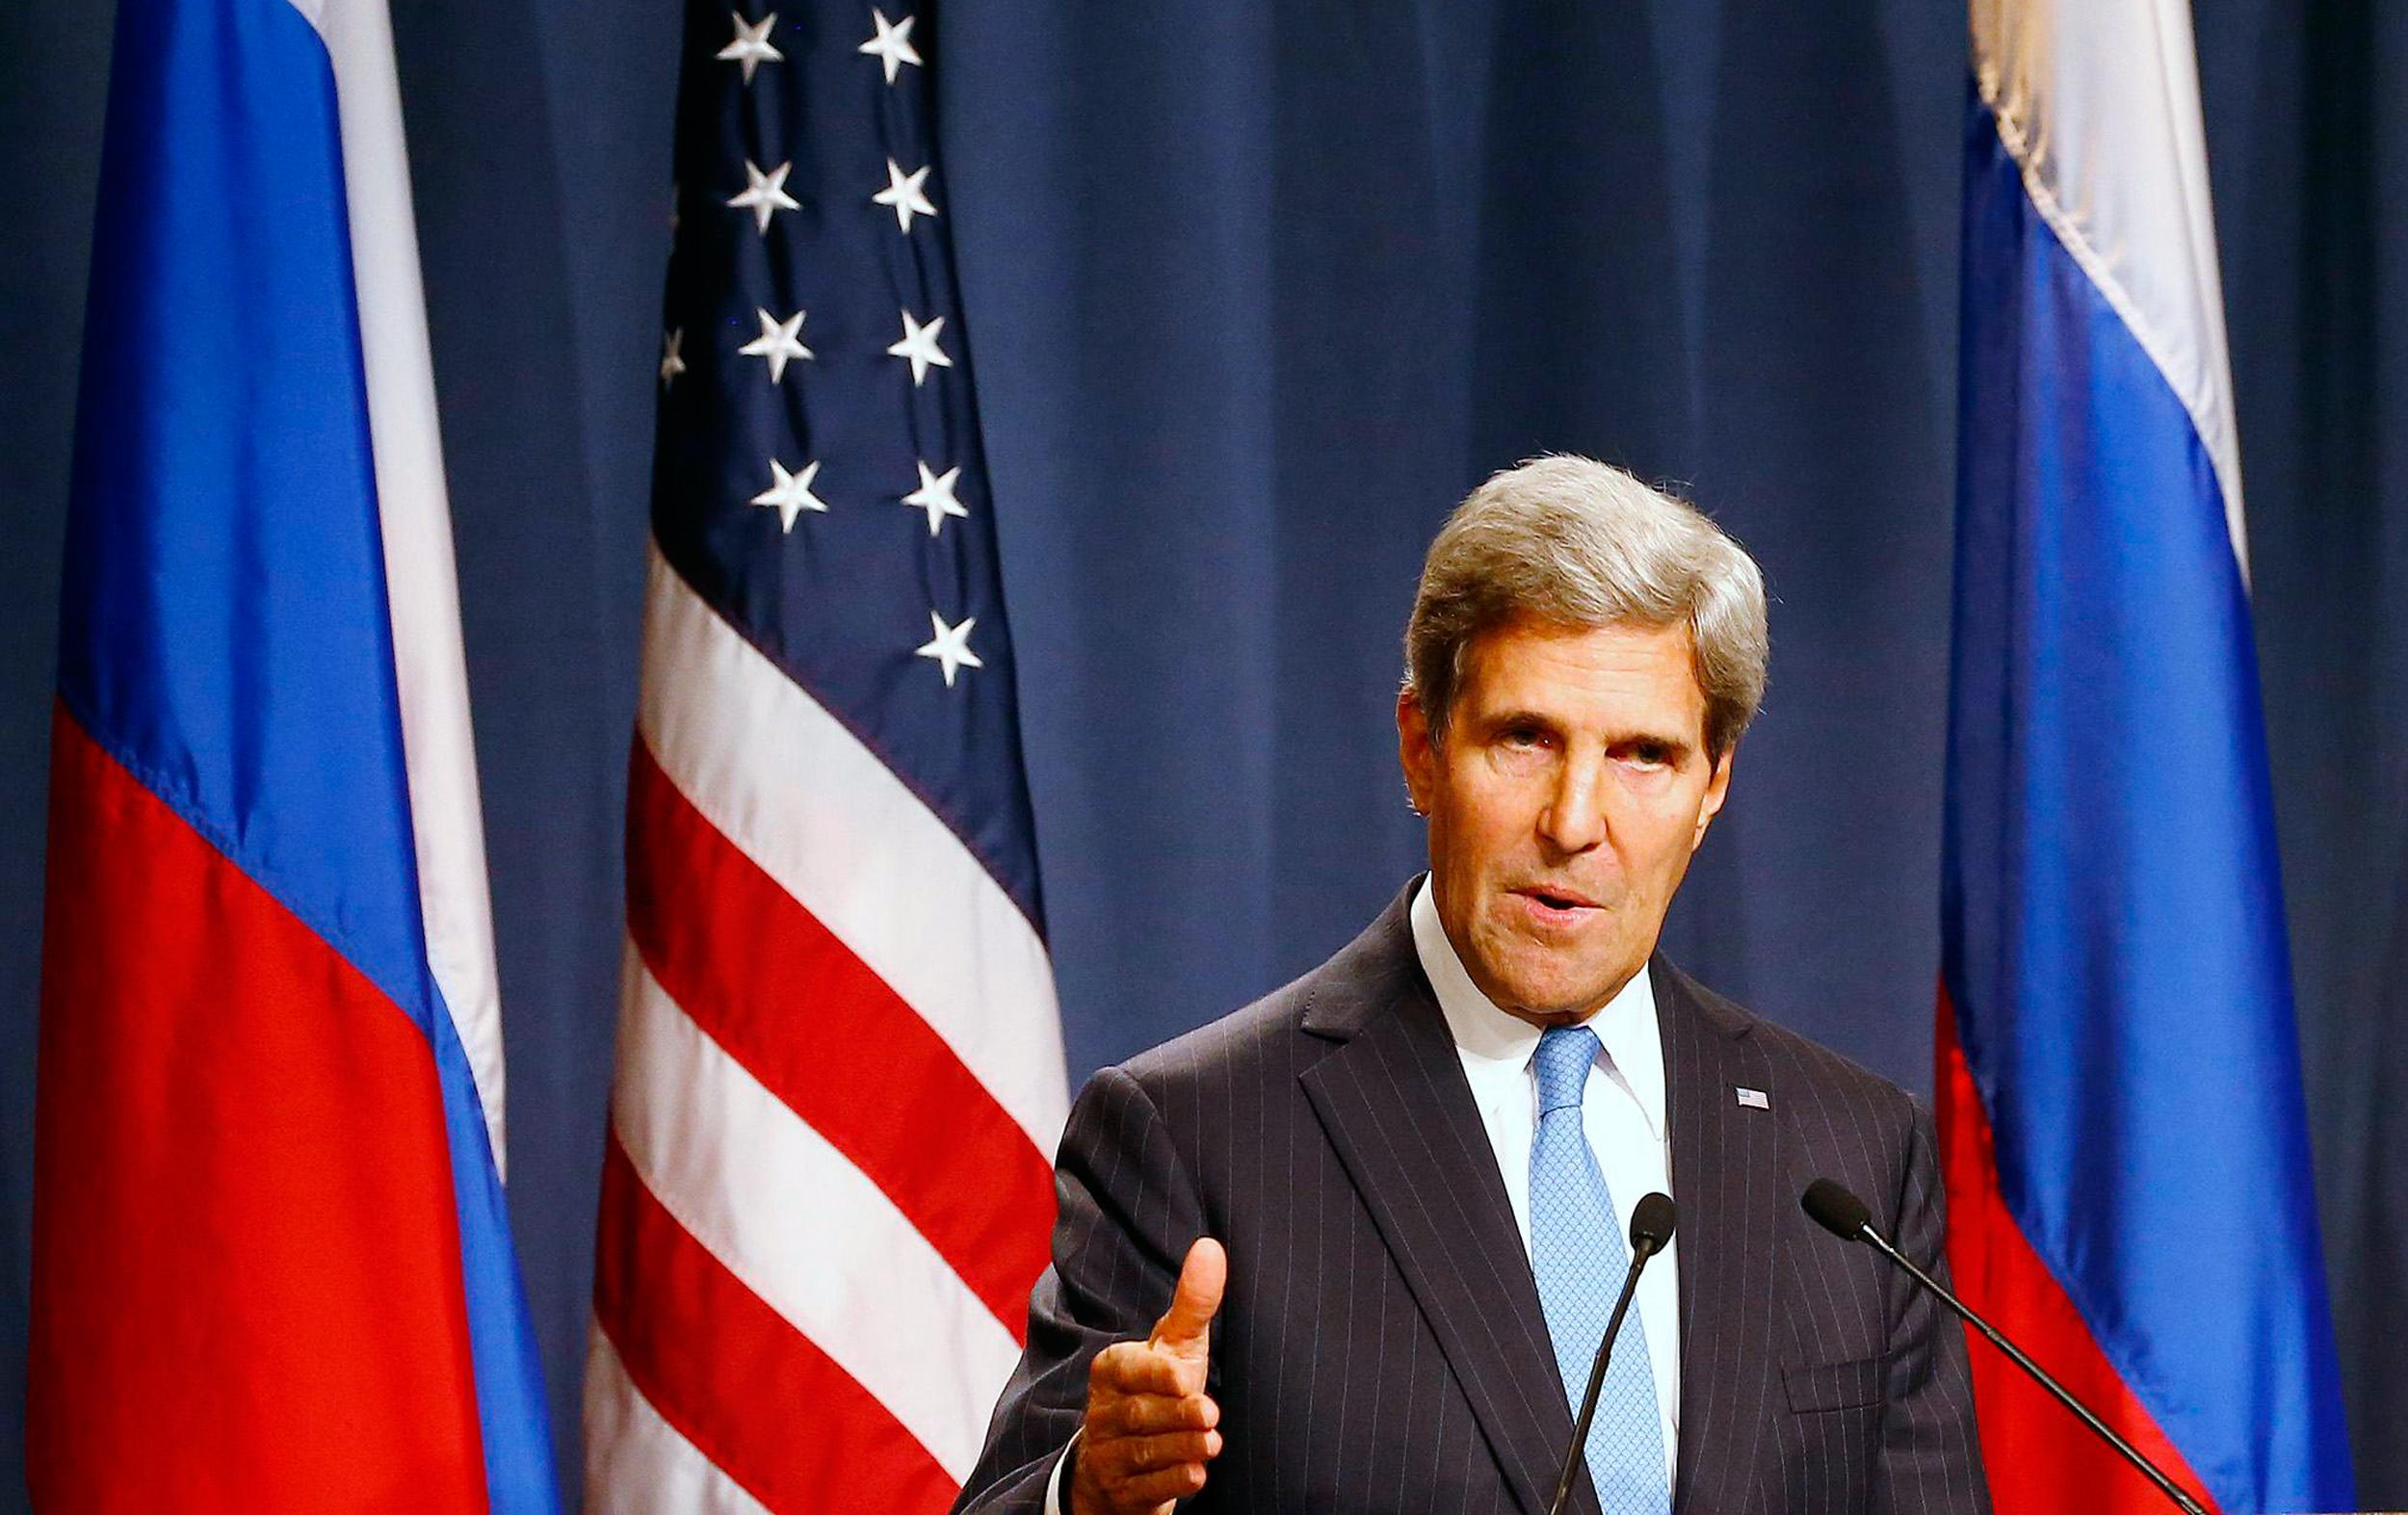 Image: US Sec. of State John Kerry and Russian Foreign Minister Sergey Lavrov in Geneva